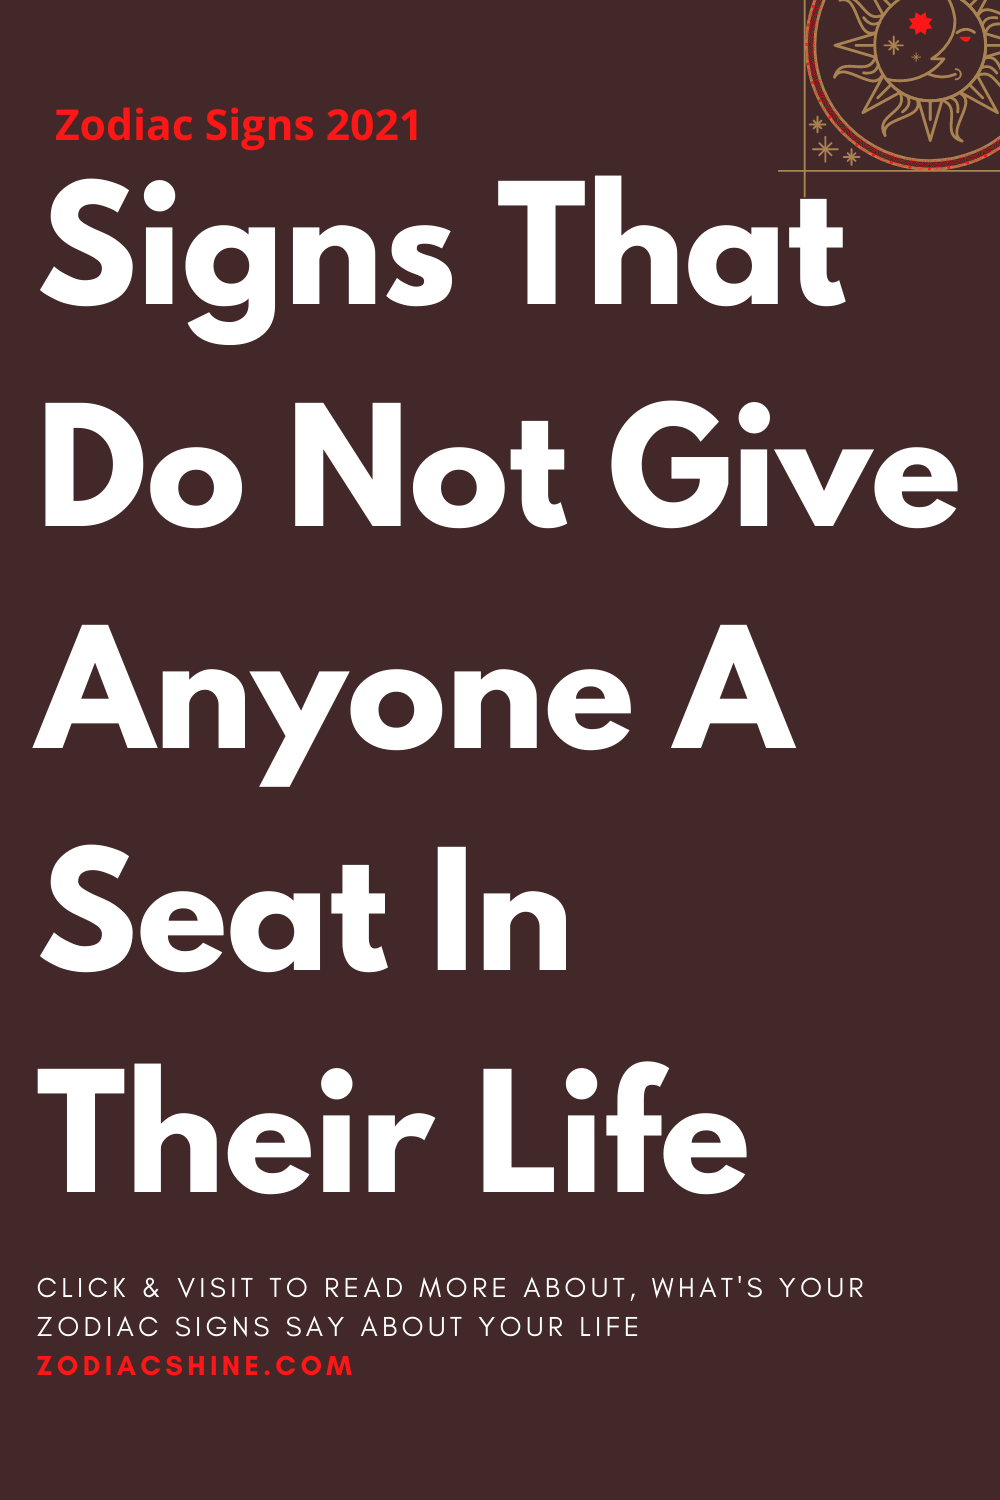 Signs That Do Not Give Anyone A Seat In Their Life